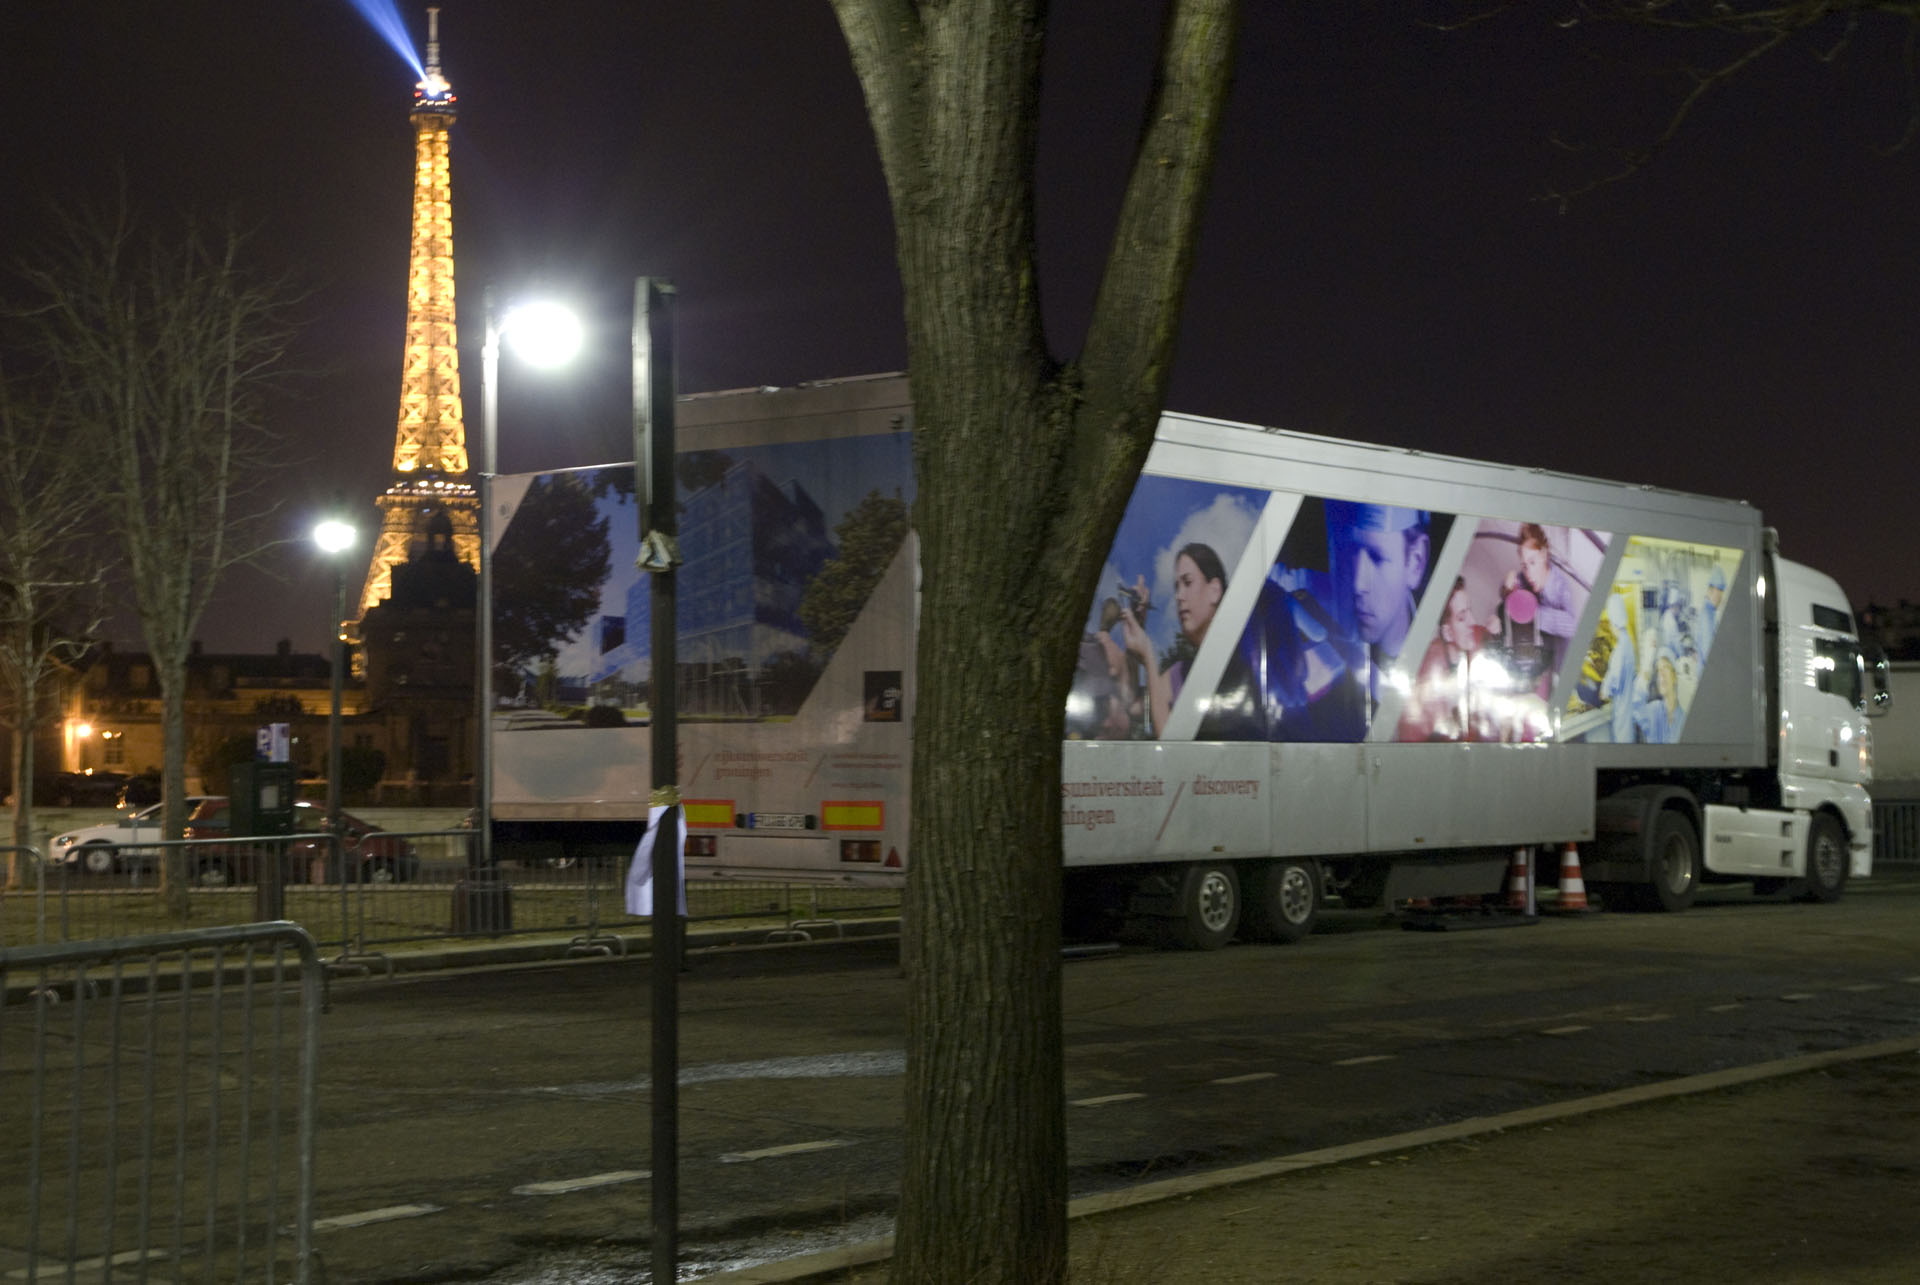 Groningen Discovery Truck - in front of the Tour Eiffel